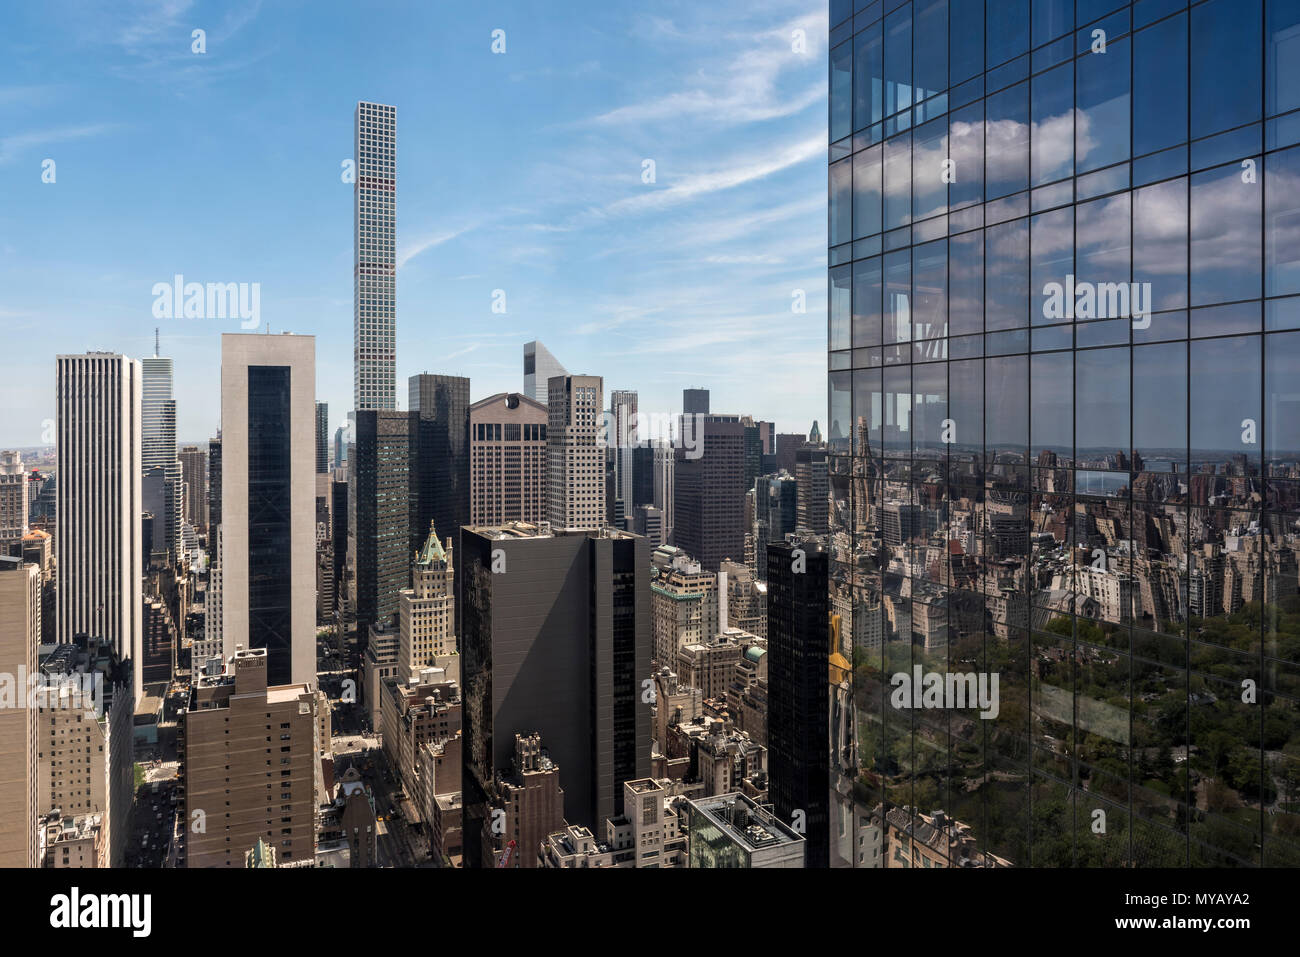 'Cityscape avec gratte-ciel à New York City, USA' Photo Stock